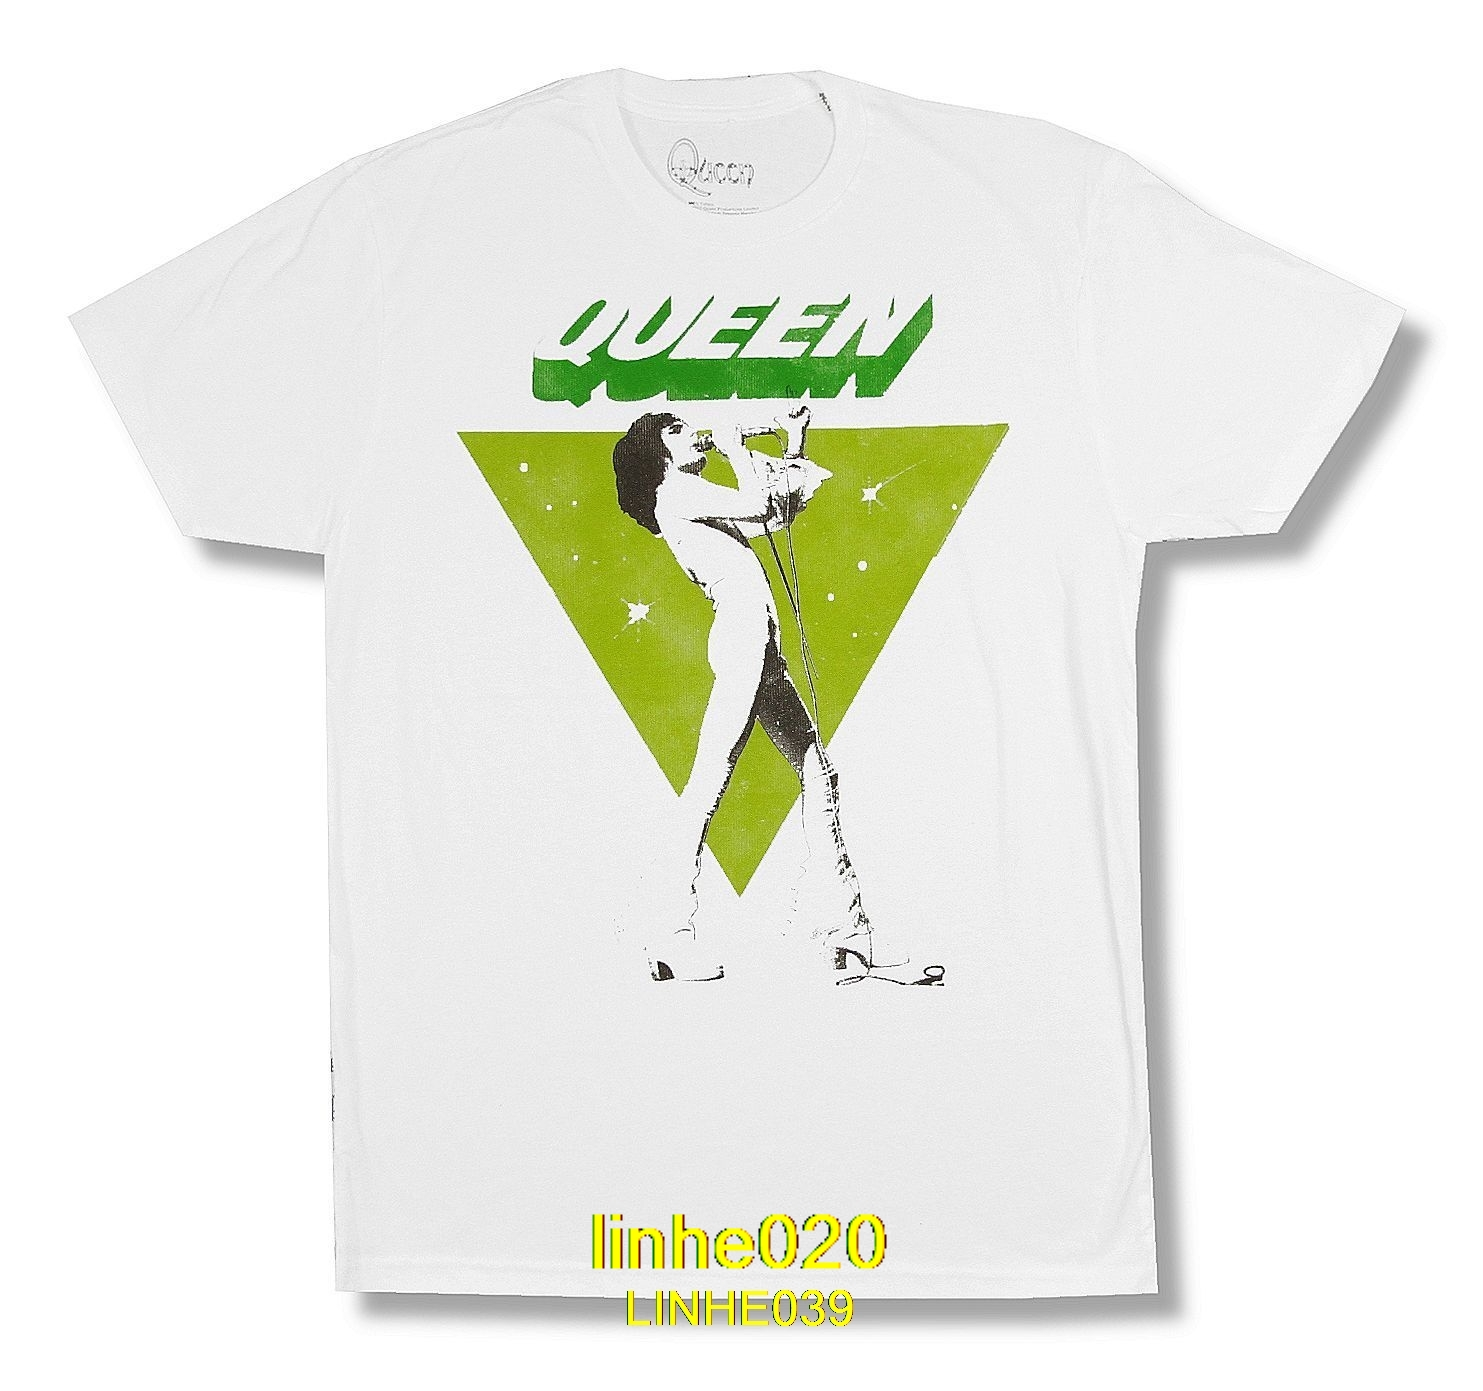 f3502577c6c6 Queen Freddie Sings Image White T Shirt New Official Band Merch Soft 2019  New 100%